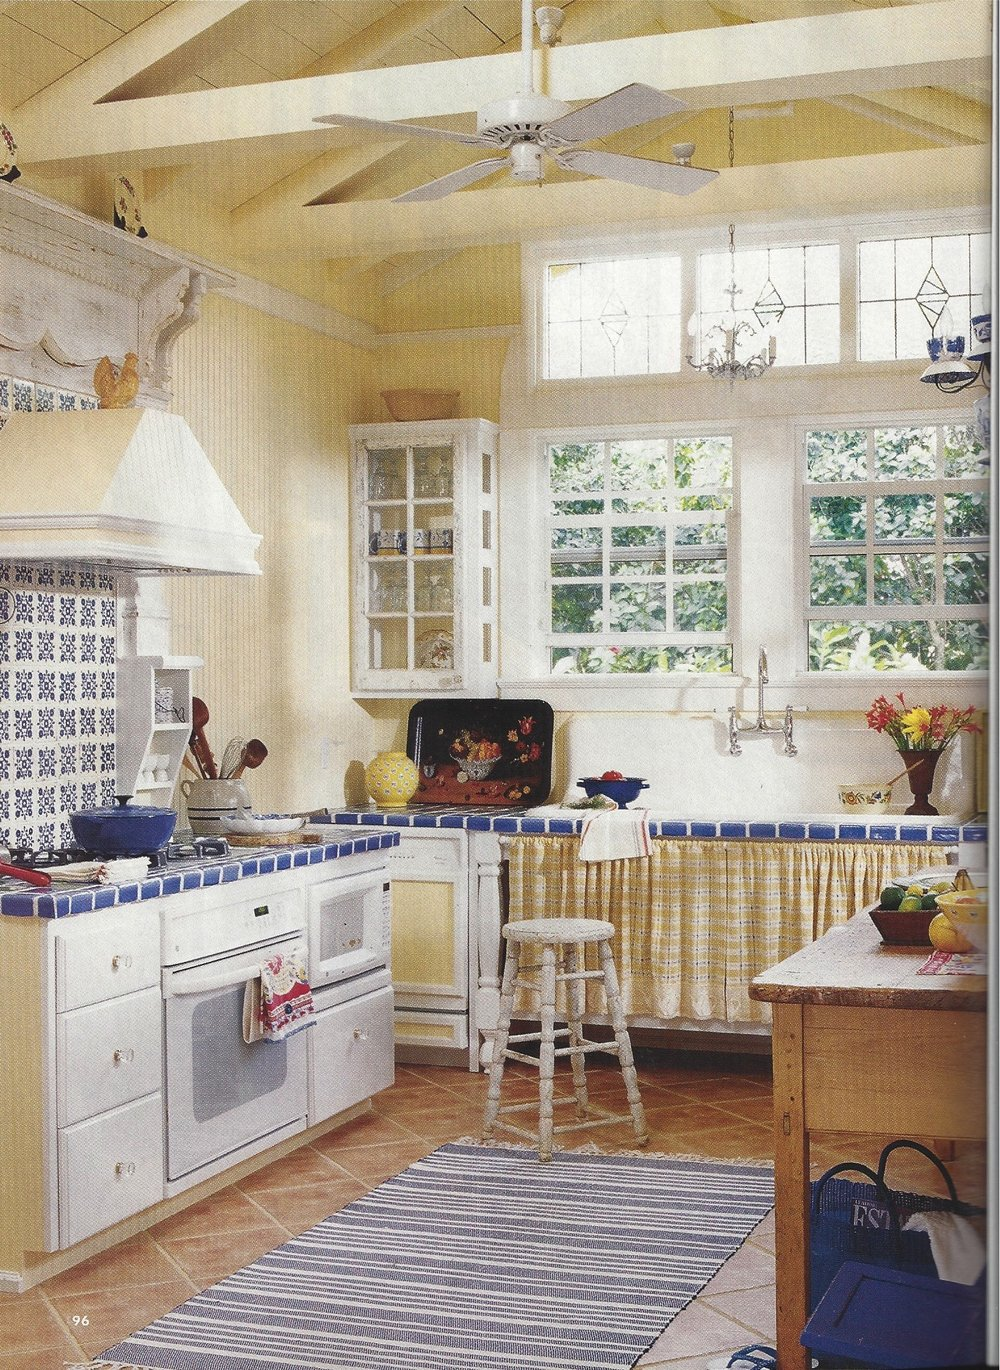 Country Living Riomar Dr. Kitchen.jpg